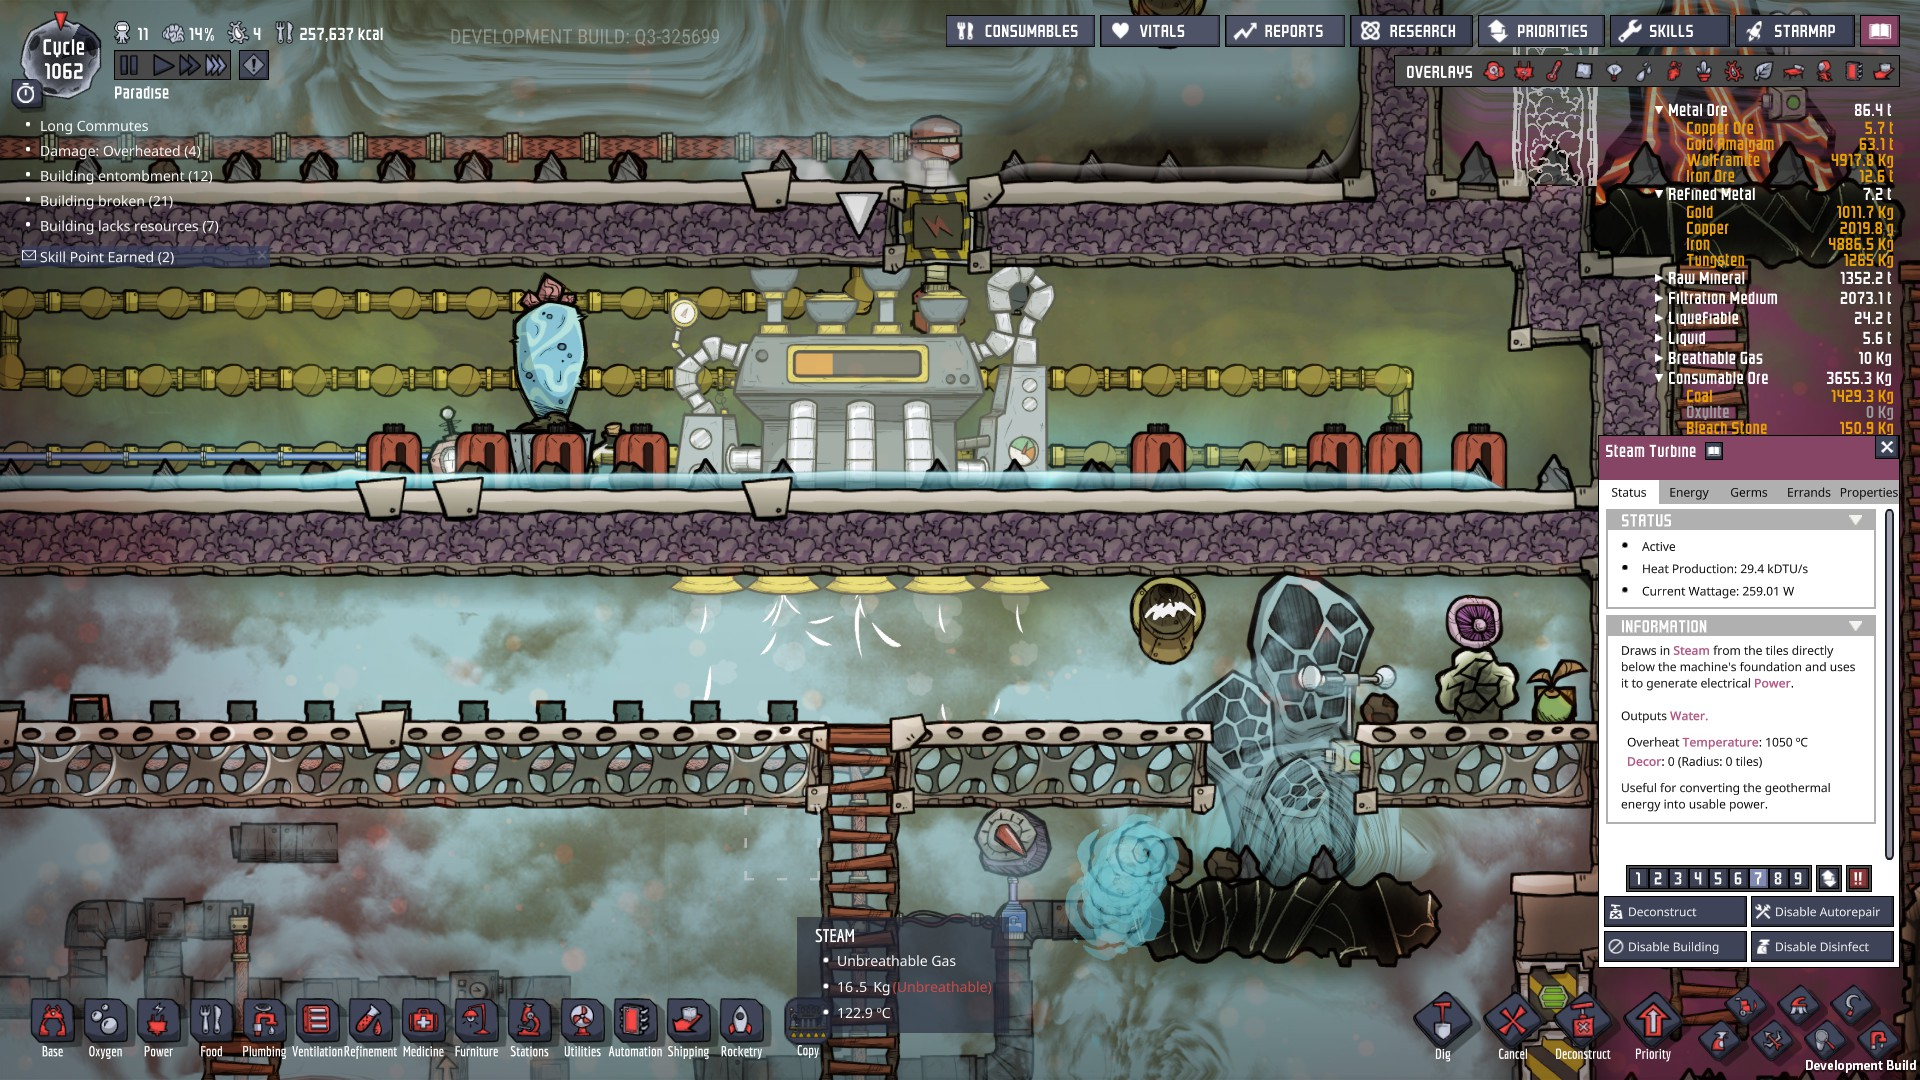 steam turbine performances - [Oxygen Not Included] - General